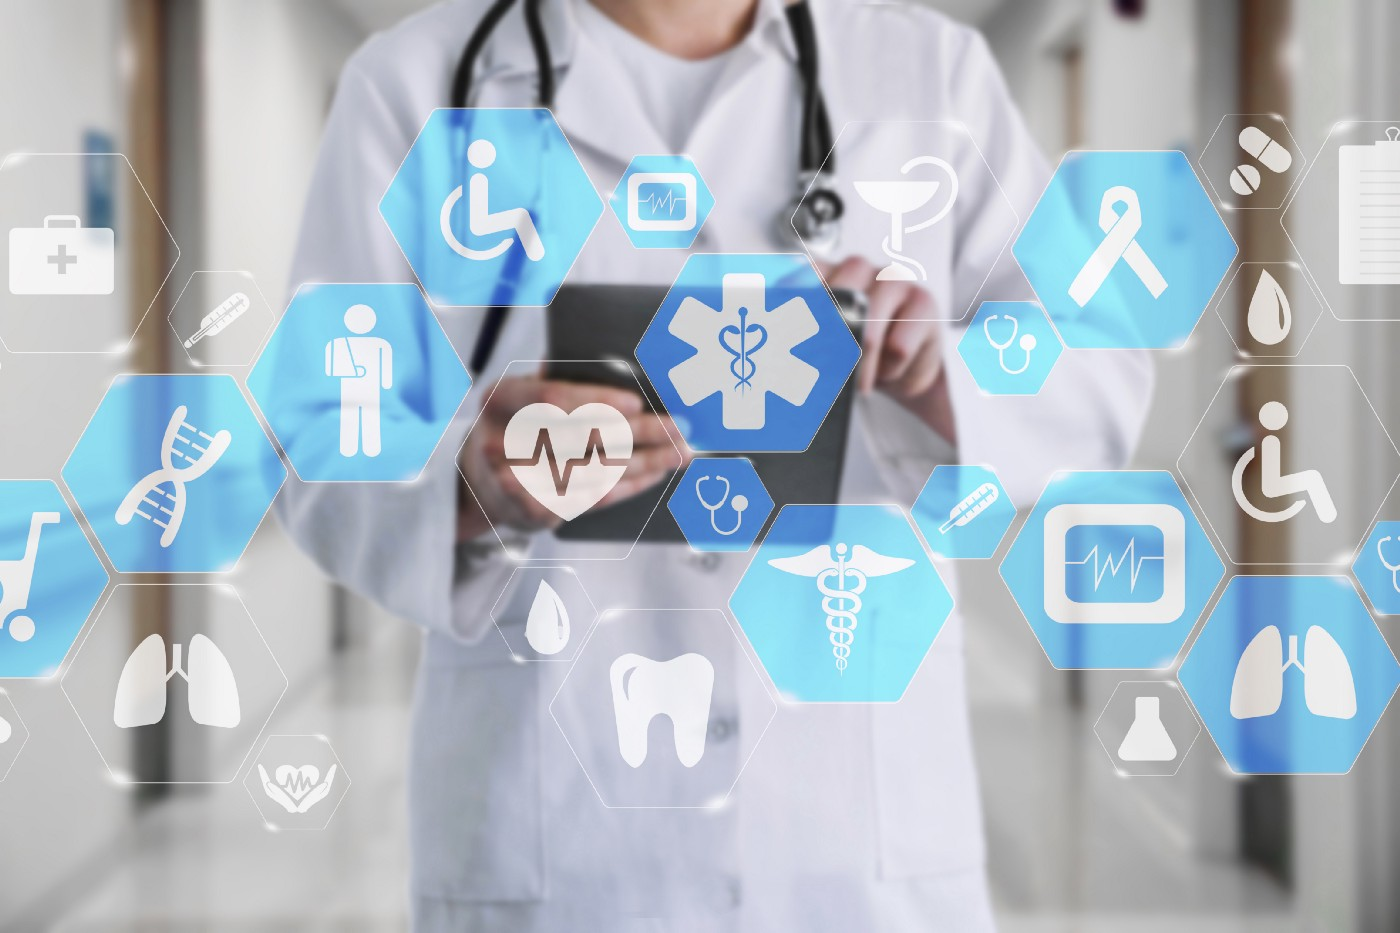 App icons floating with doctor holding a tablet